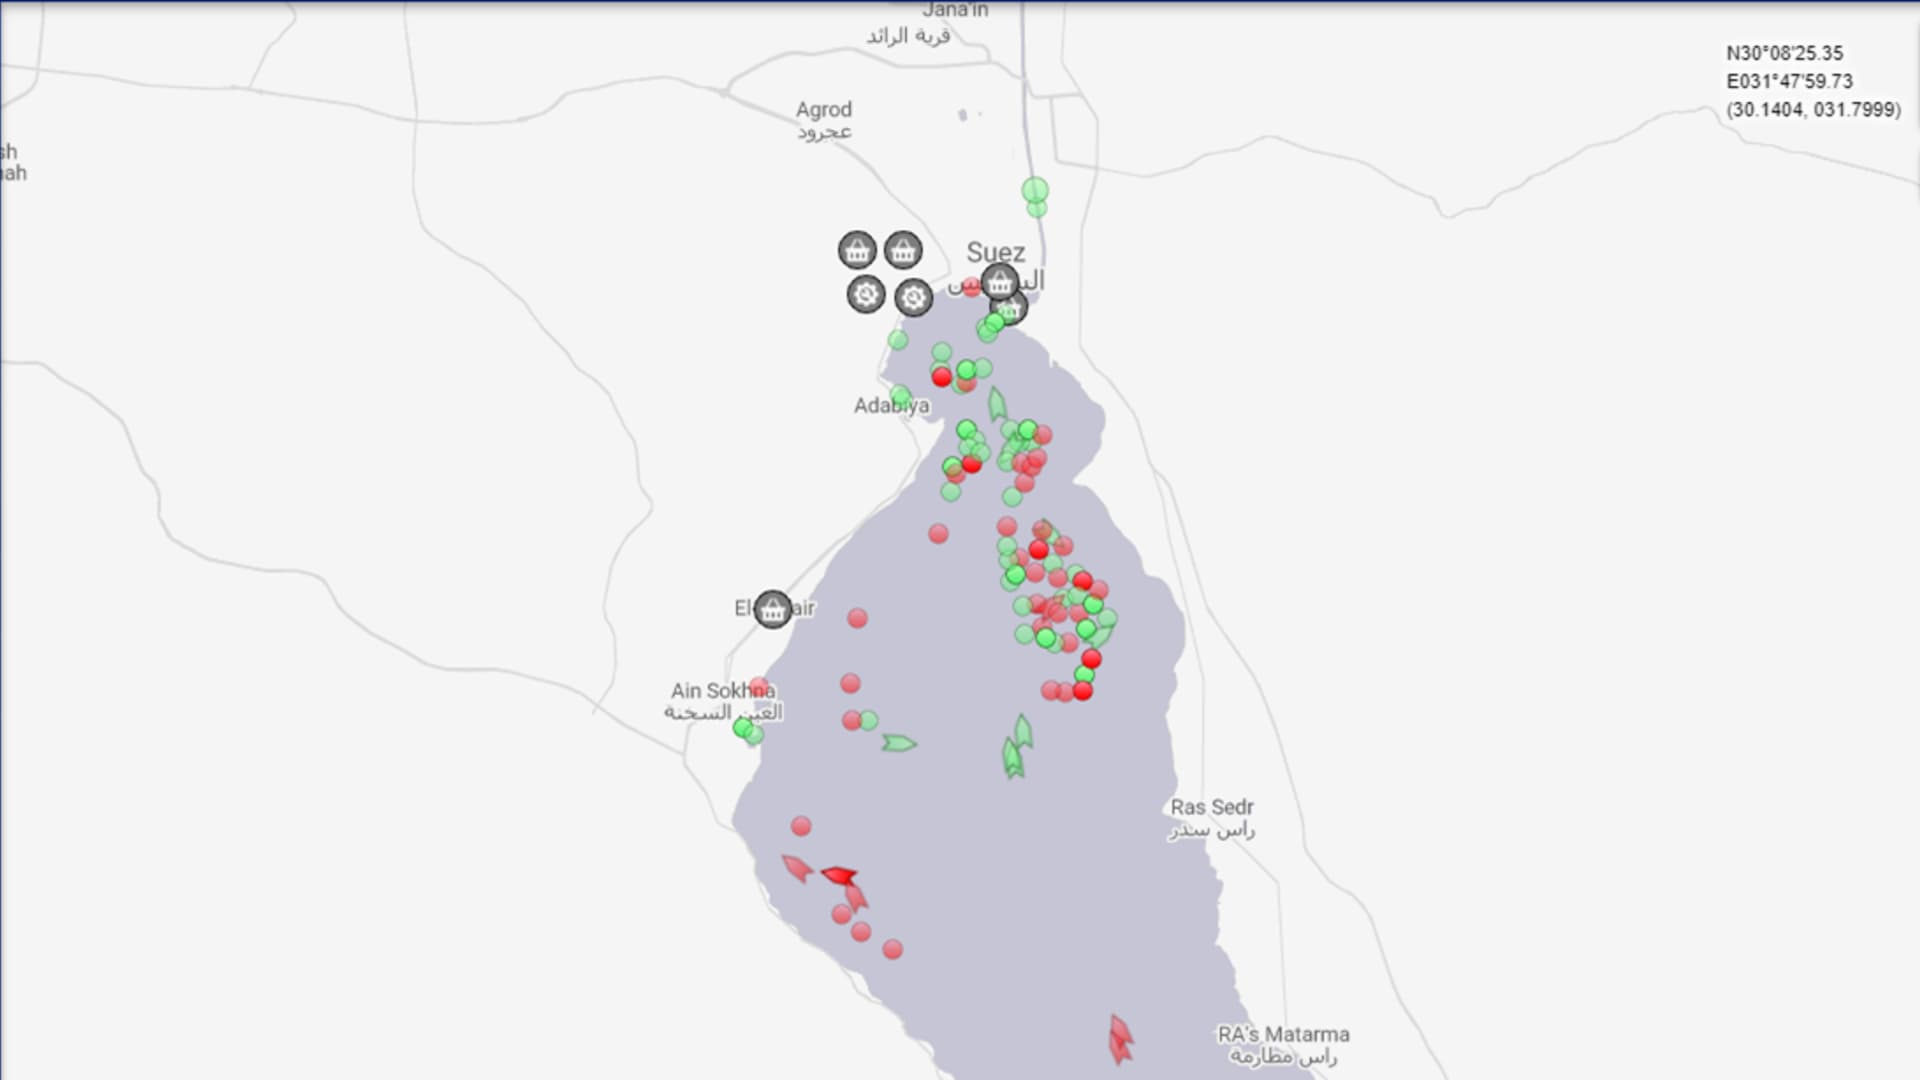 A graph from MarineTraffic showing shipping traffic halted around the Suez Canal after the ship Ever Given became wedged in the canal.